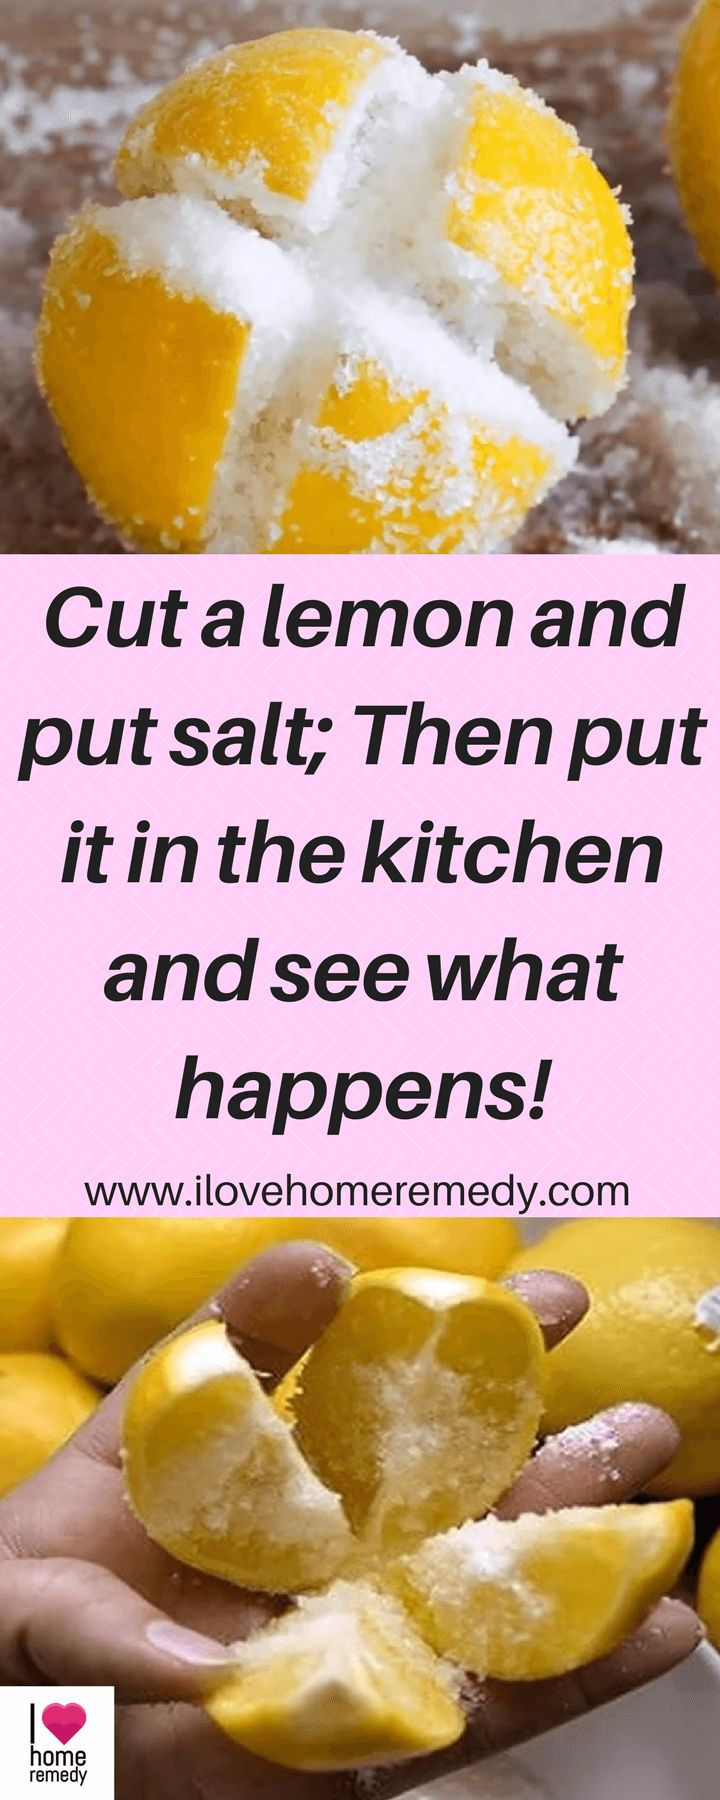 Cut a lemon and put salt; Then put it in the kitchen and see what happens